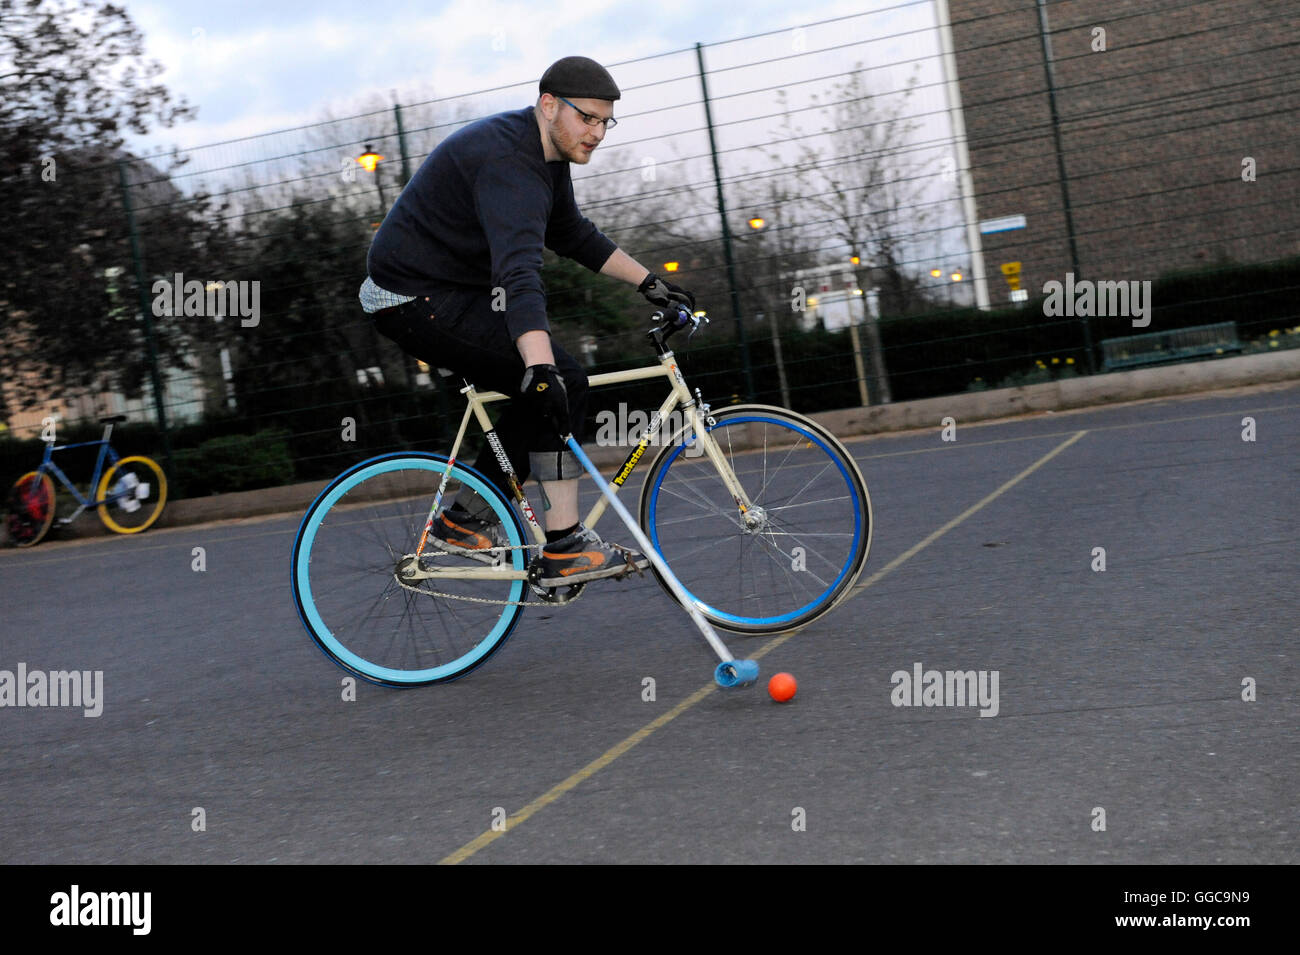 Bike polo in Newington Park on Harper Road, just off Newington Causeway near Elephant and Castle. 1st April 2009. - Stock Image